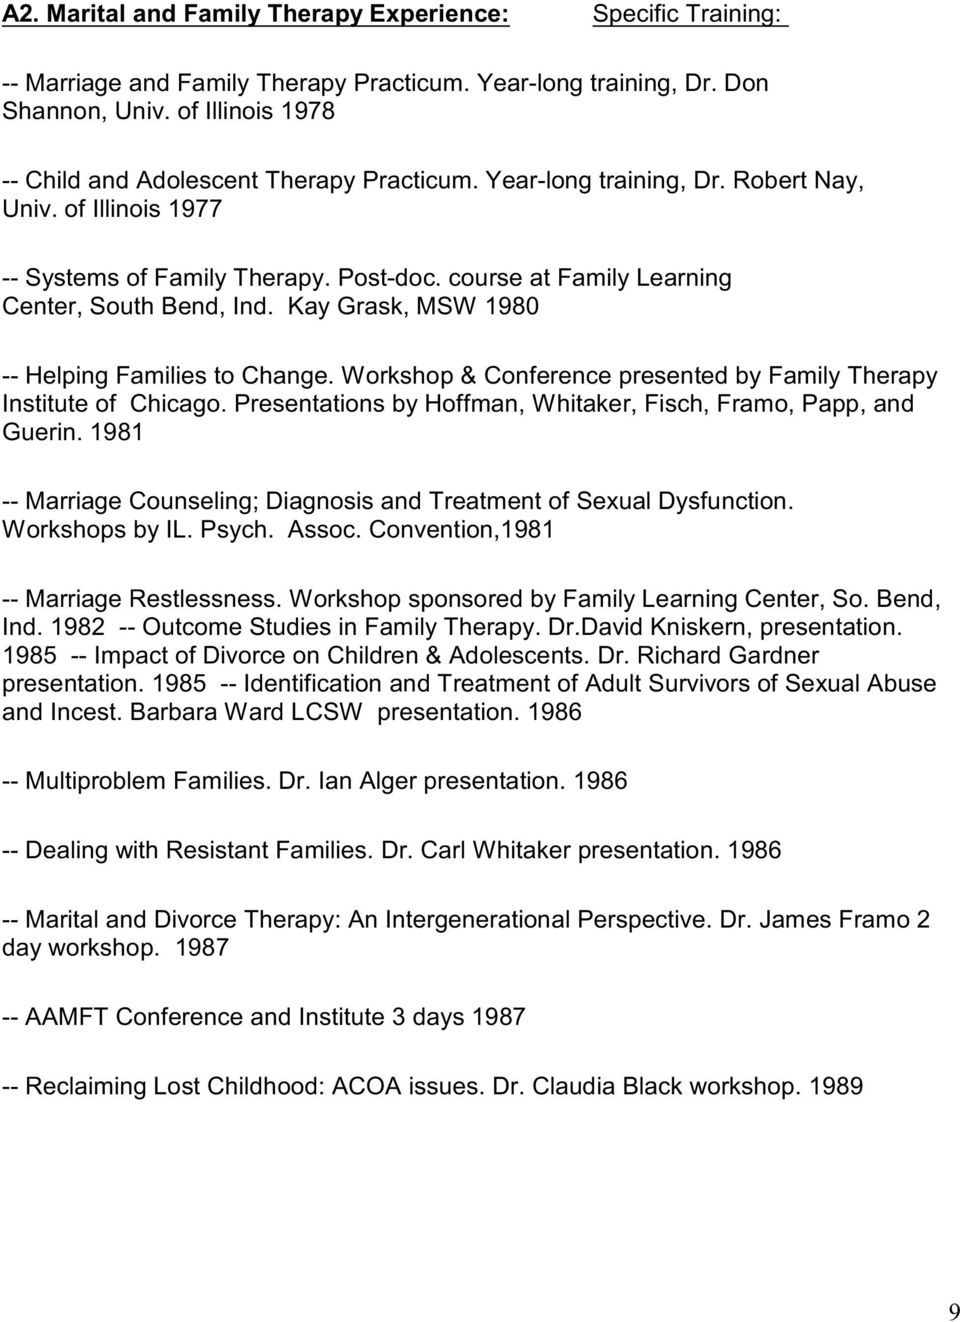 course at Family Learning Center, South Bend, Ind. Kay Grask, MSW 1980 -- Helping Families to Change. Workshop & Conference presented by Family Therapy Institute of Chicago.